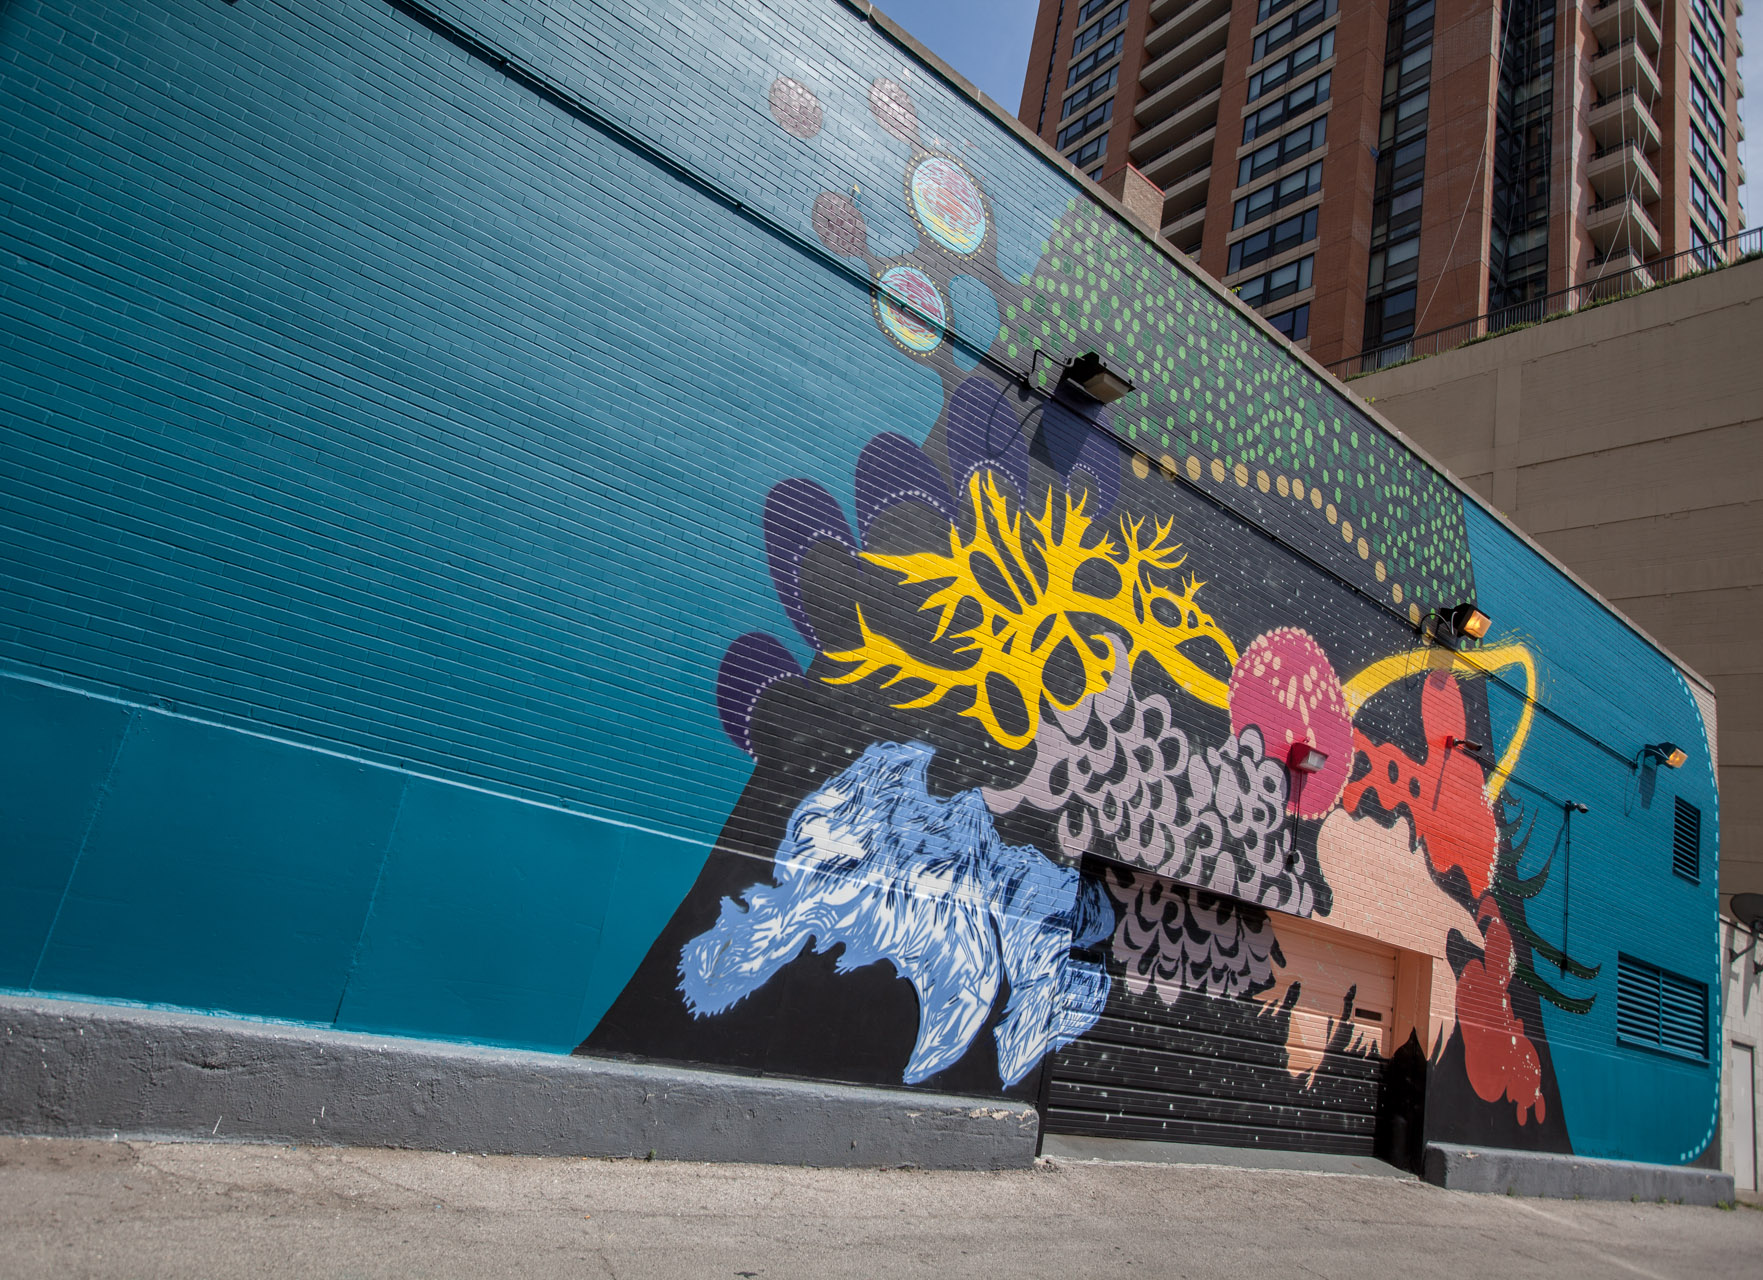 X Marks the Milky Way Mural located at 1130 S Wabash. Completed in May 2016